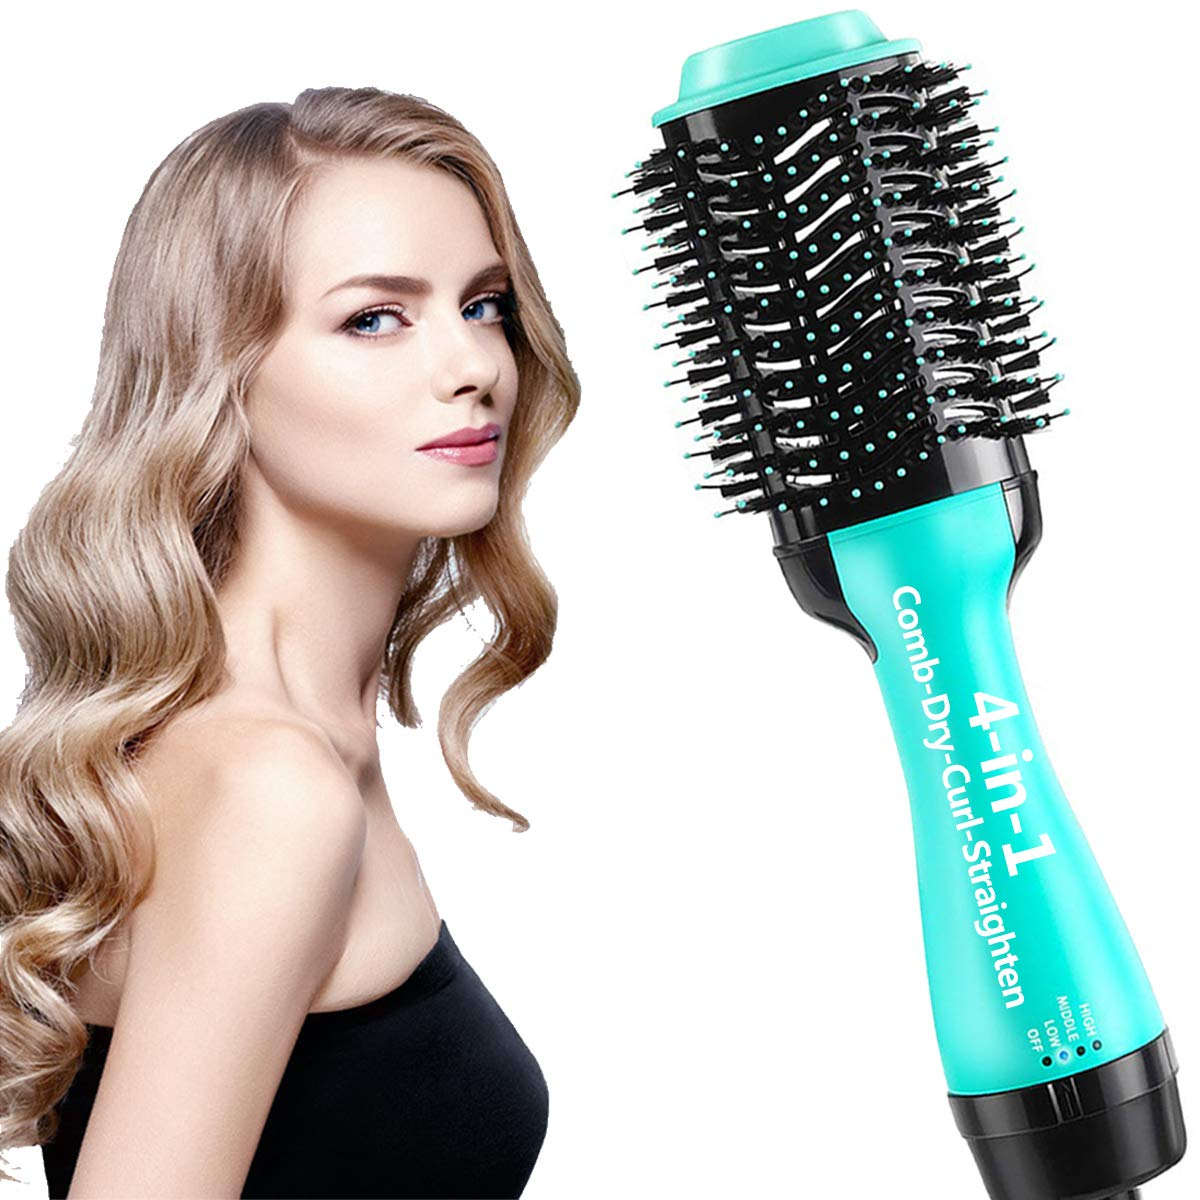 One step hair dryer and styler 4in1 multifunctional Hot air brush straightener-curl-comb-dryer, One step hair dryer and volumizer brush Feature Anti-scald Reduce Frizz & Static Styling (Green+black)